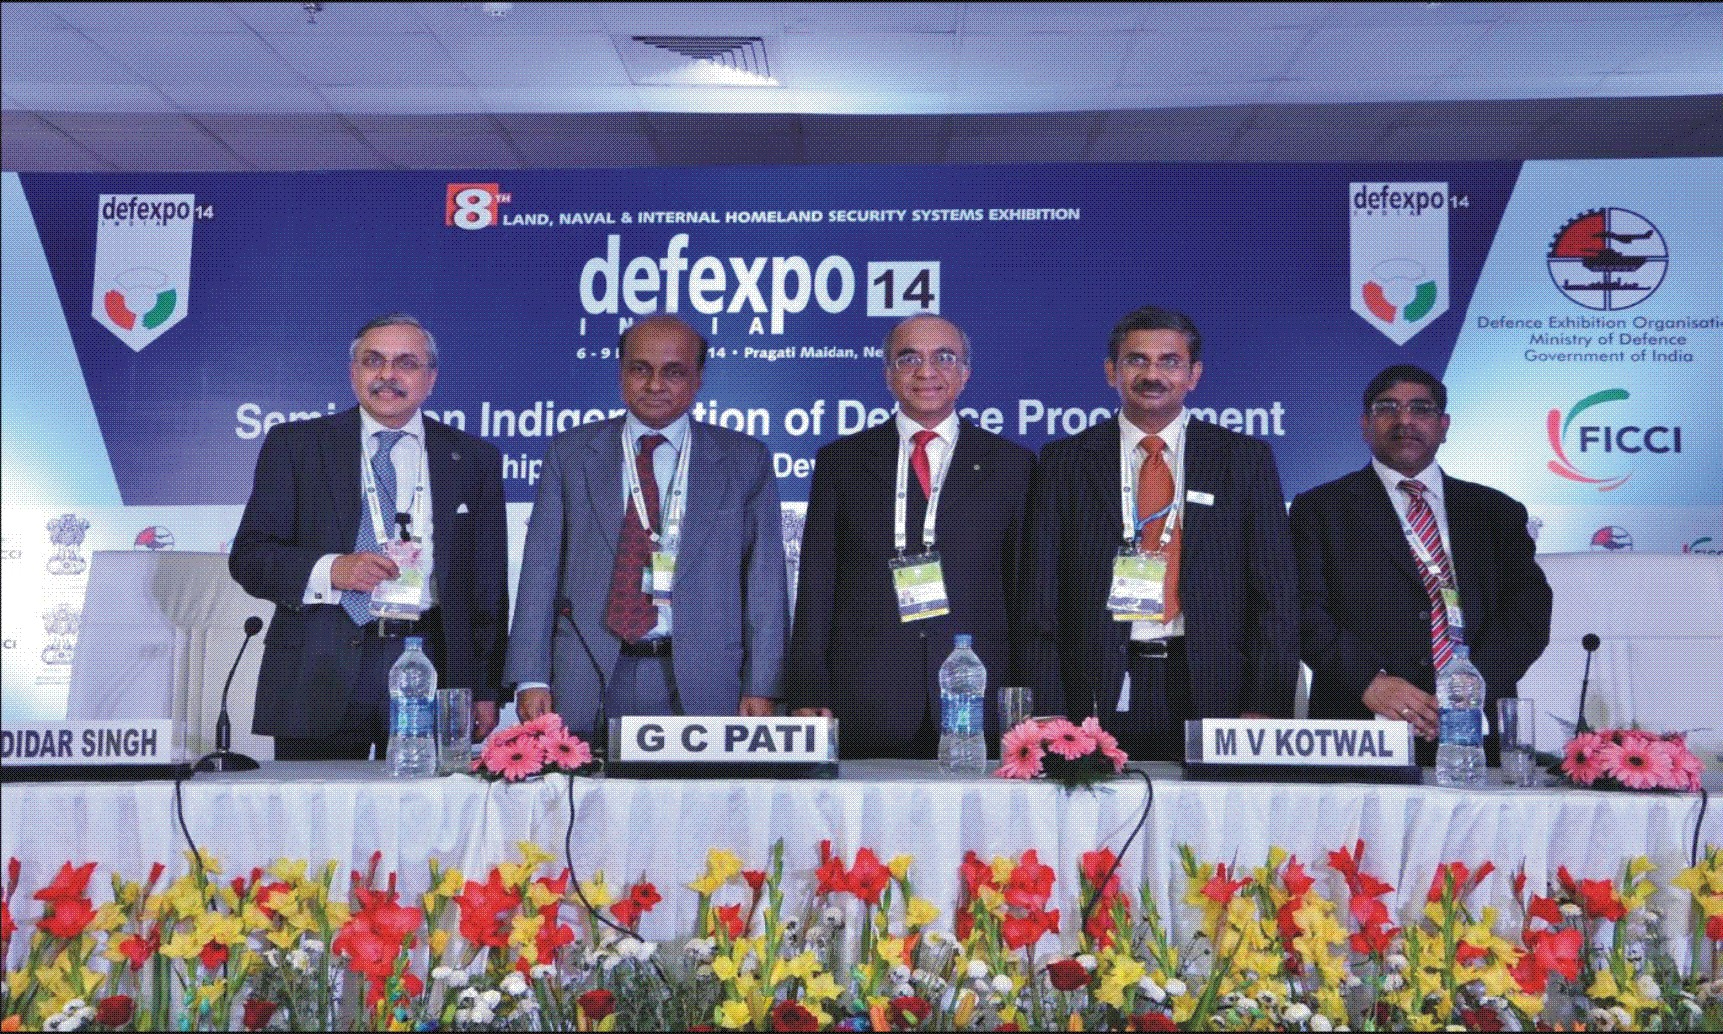 Inaugural Session (L to R) Dr. A. Didar Singh, Secretary General, FICCI; Mr G C Pati, Secretary (DP), Ministry of Defence; Mr M V Kotwal, Chairman, FICCI Defence Committee / Member of the L&amp;T Board &amp; President  Heavy Engineering, Larsen &amp; Toubro Ltd.; Mr Rahul Chaudhry,... 			 			</div> 				<a href=